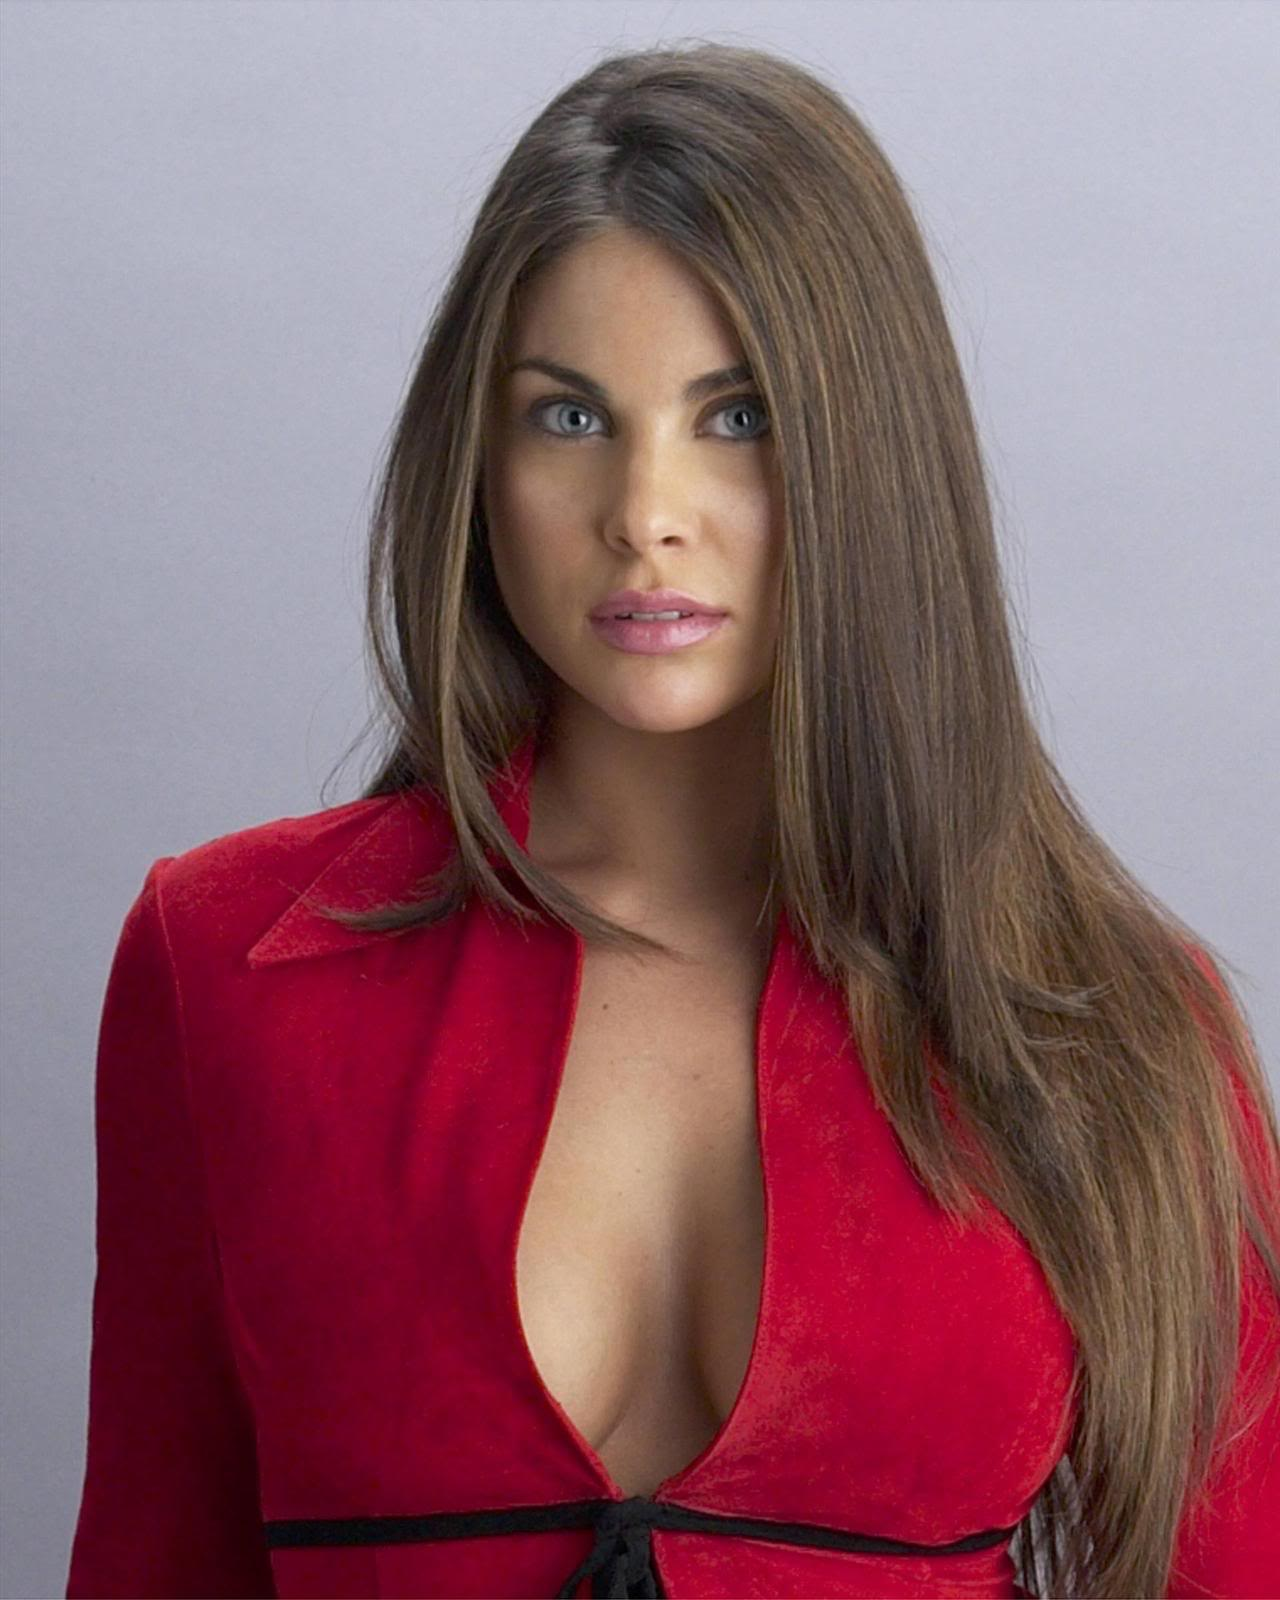 Nadia Bjorlin - Sexy red Photo Shoot - Sexy Actress Pictures | Hot Actress Pictures